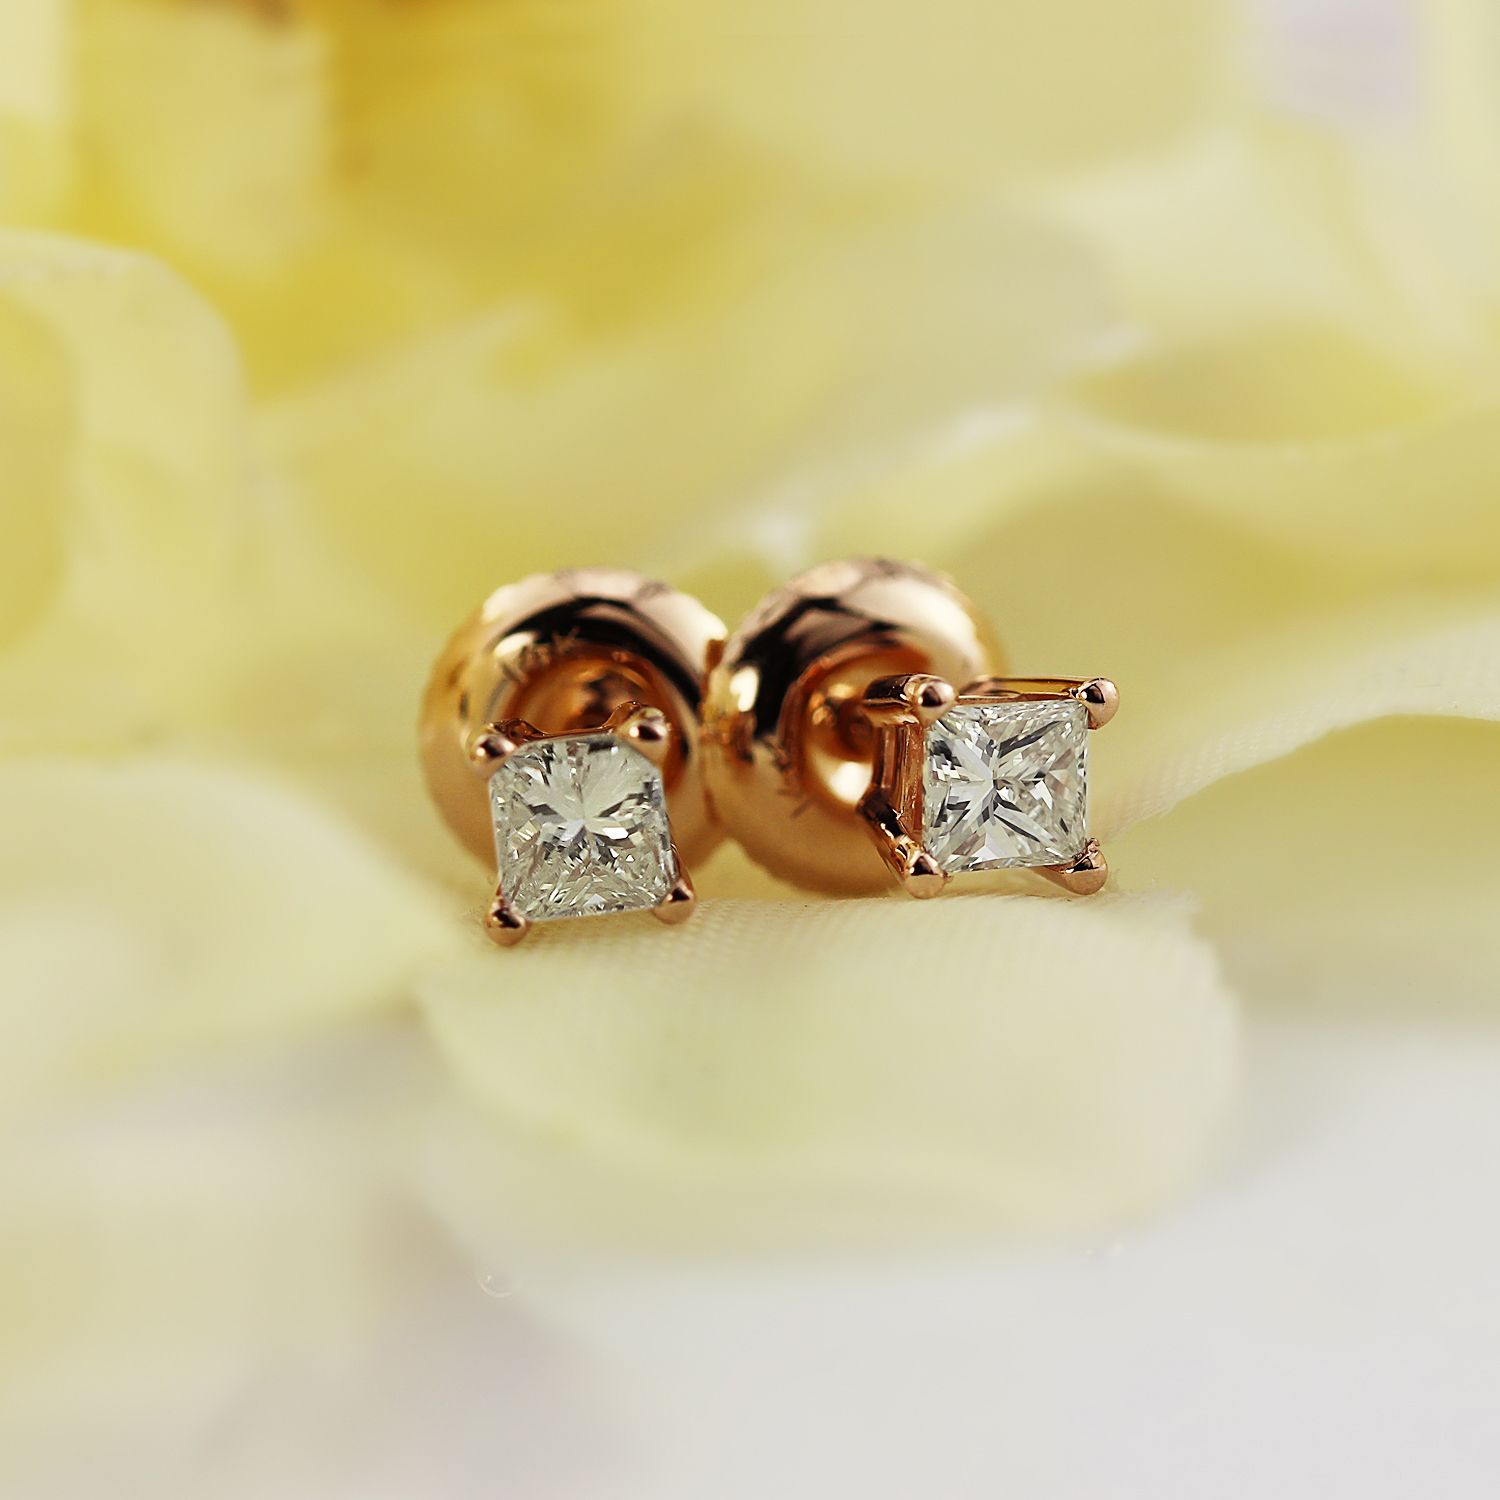 carat studs gh princess men white buy square baguette whwh gold diamond s earrings main round stud cut